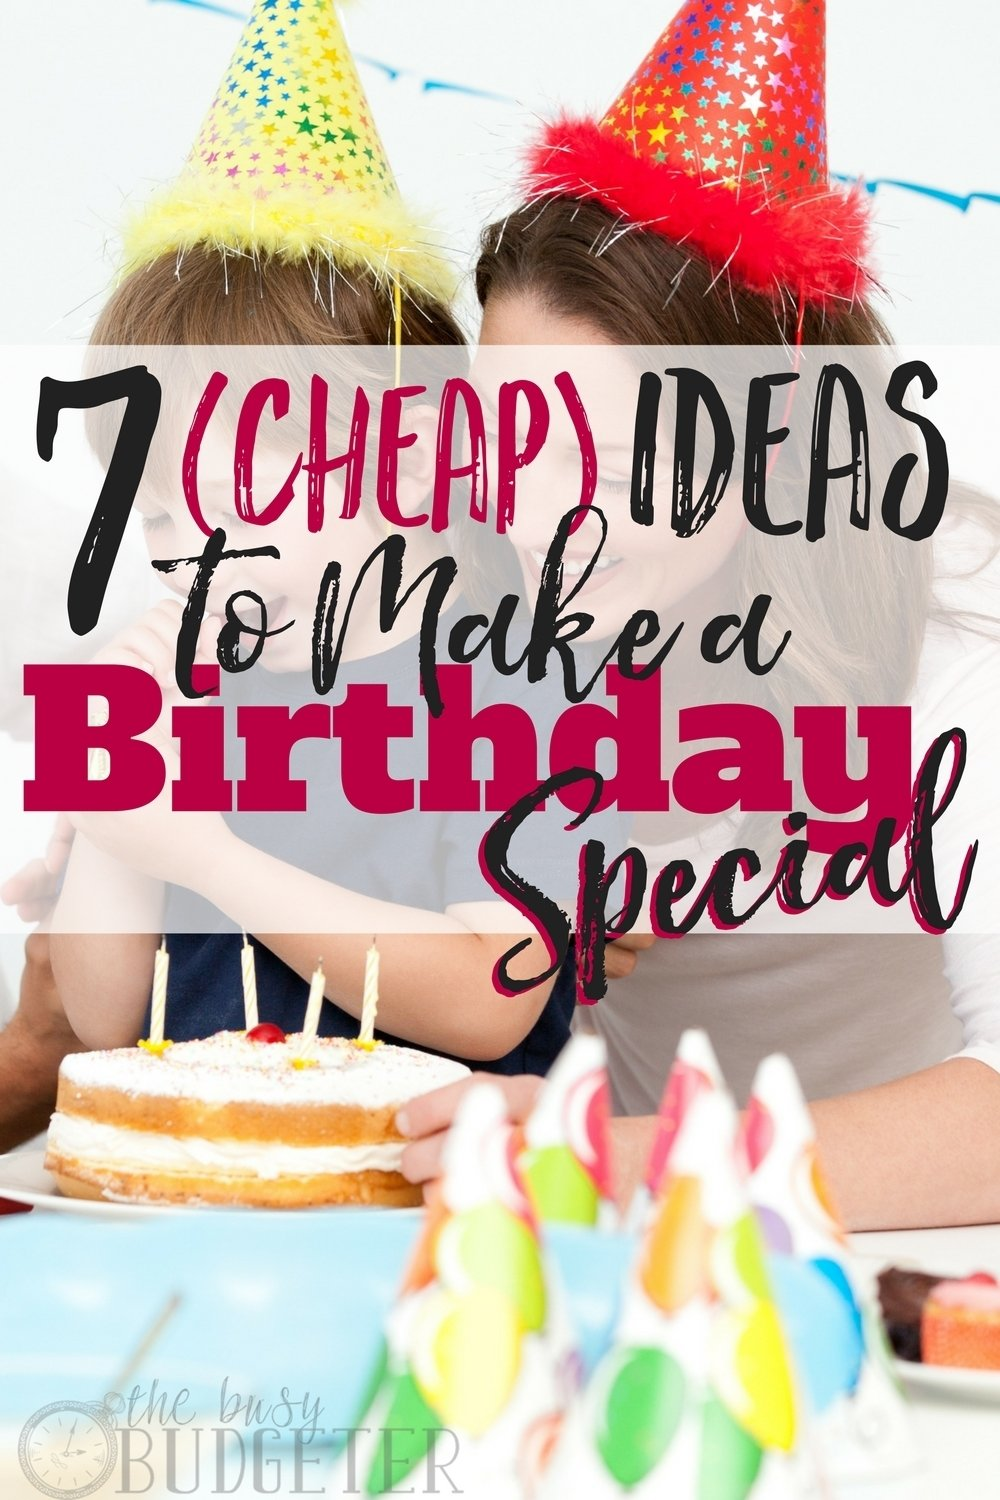 10 Lovely Cheap Birthday Ideas For Husband 7 cheap ideas to make a birthday special busy budgeter 2 2020